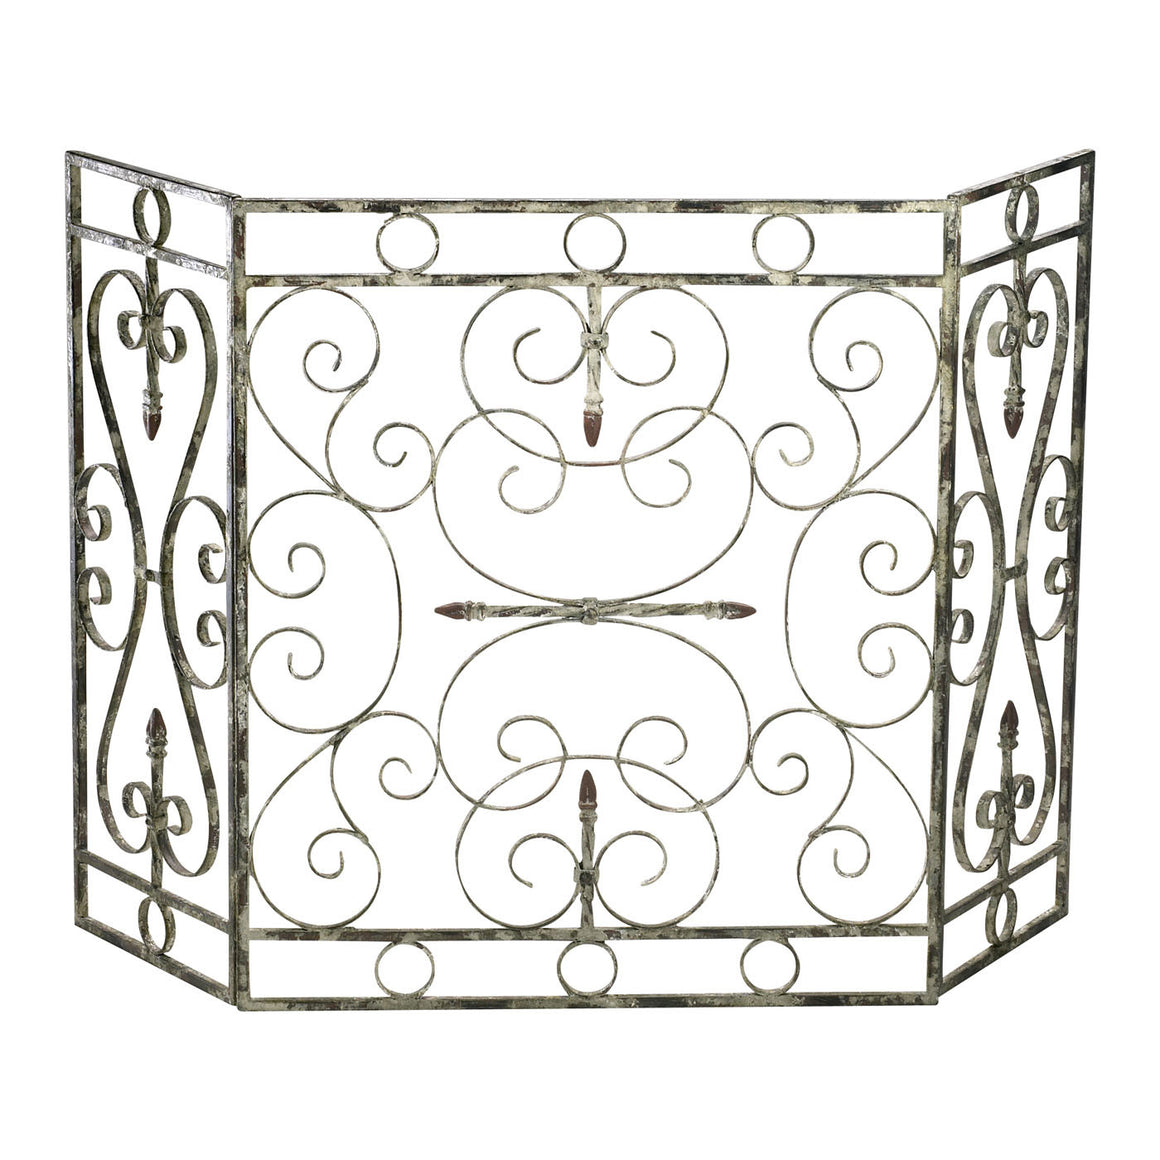 Crawford Fire Screen 04094 by Cyan Design